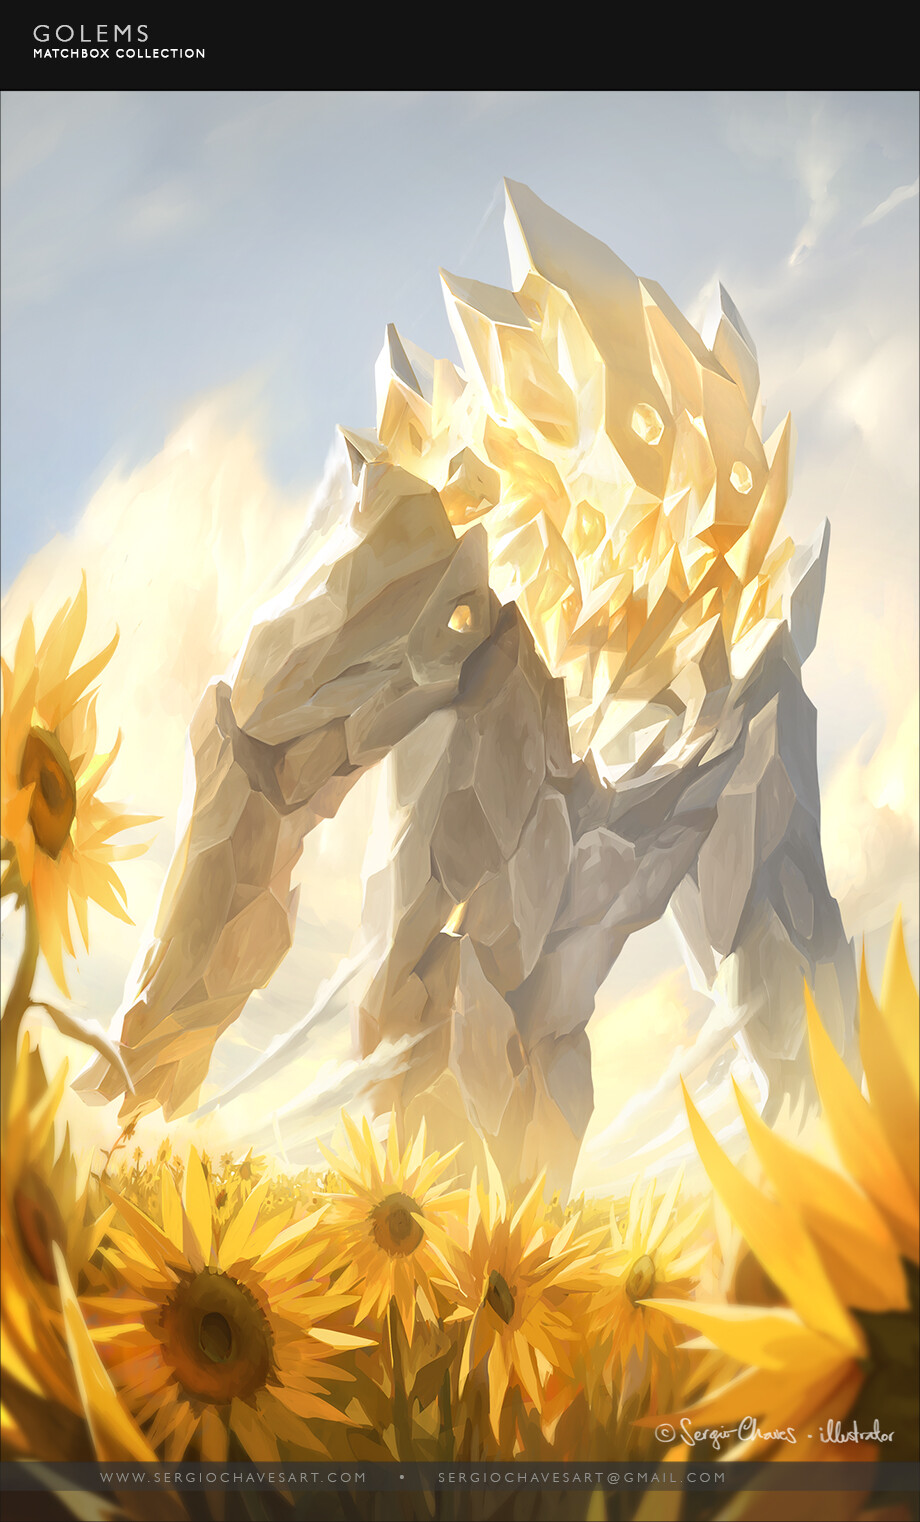 Golem - Light.   I decided to portray all Golems as gentle giants in positive, uplifting attitudes and framing